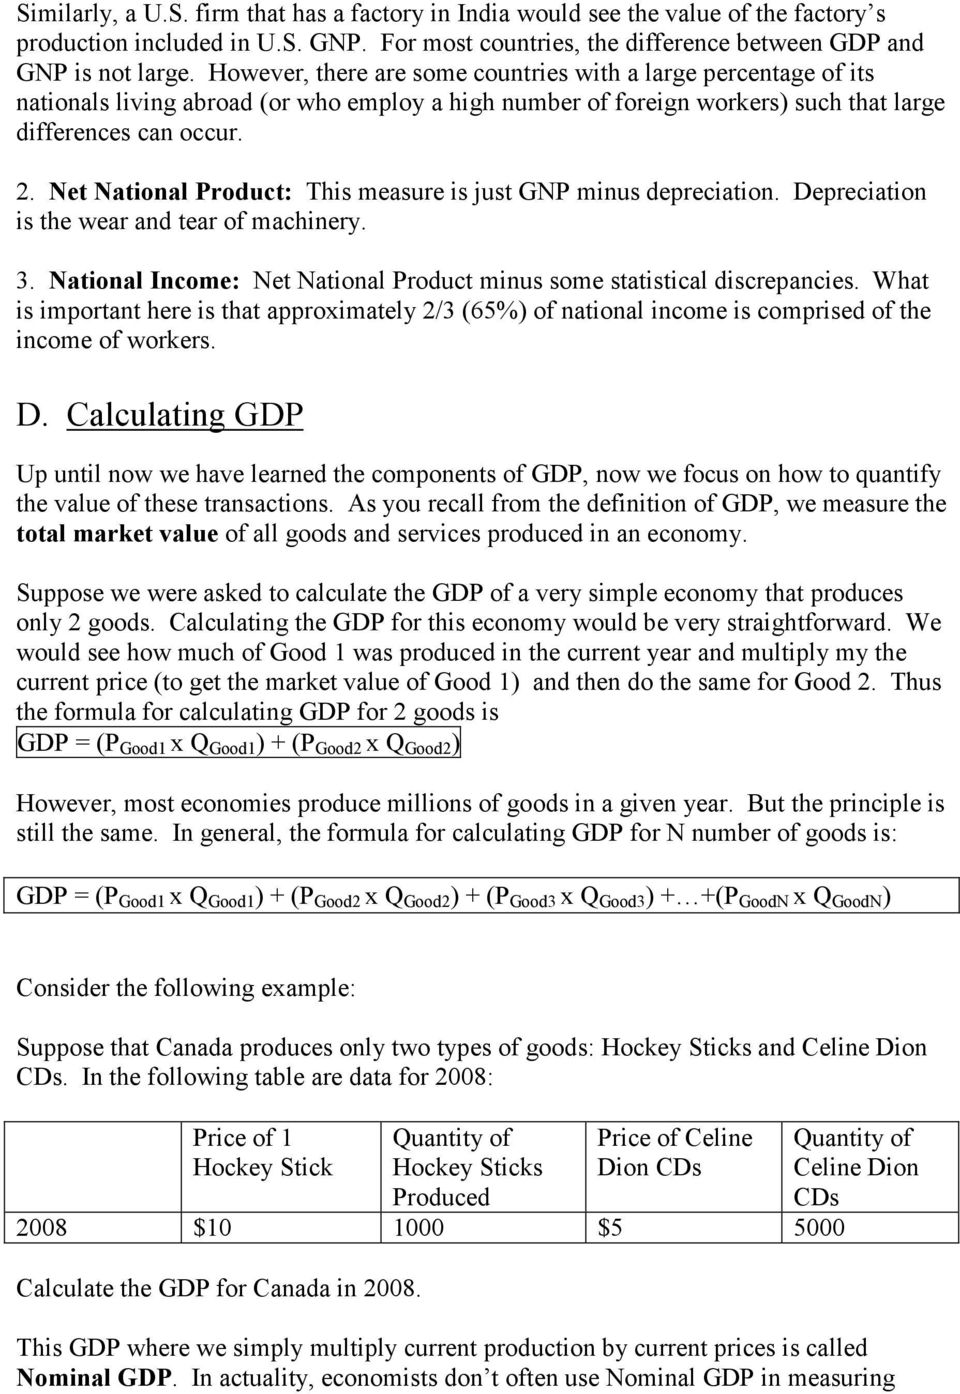 et ational Product: This measure is just GNP minus depreciation. Depreciation is the wear and tear of machinery. 3. ational Income: Net National Product minus some statistical discrepancies.